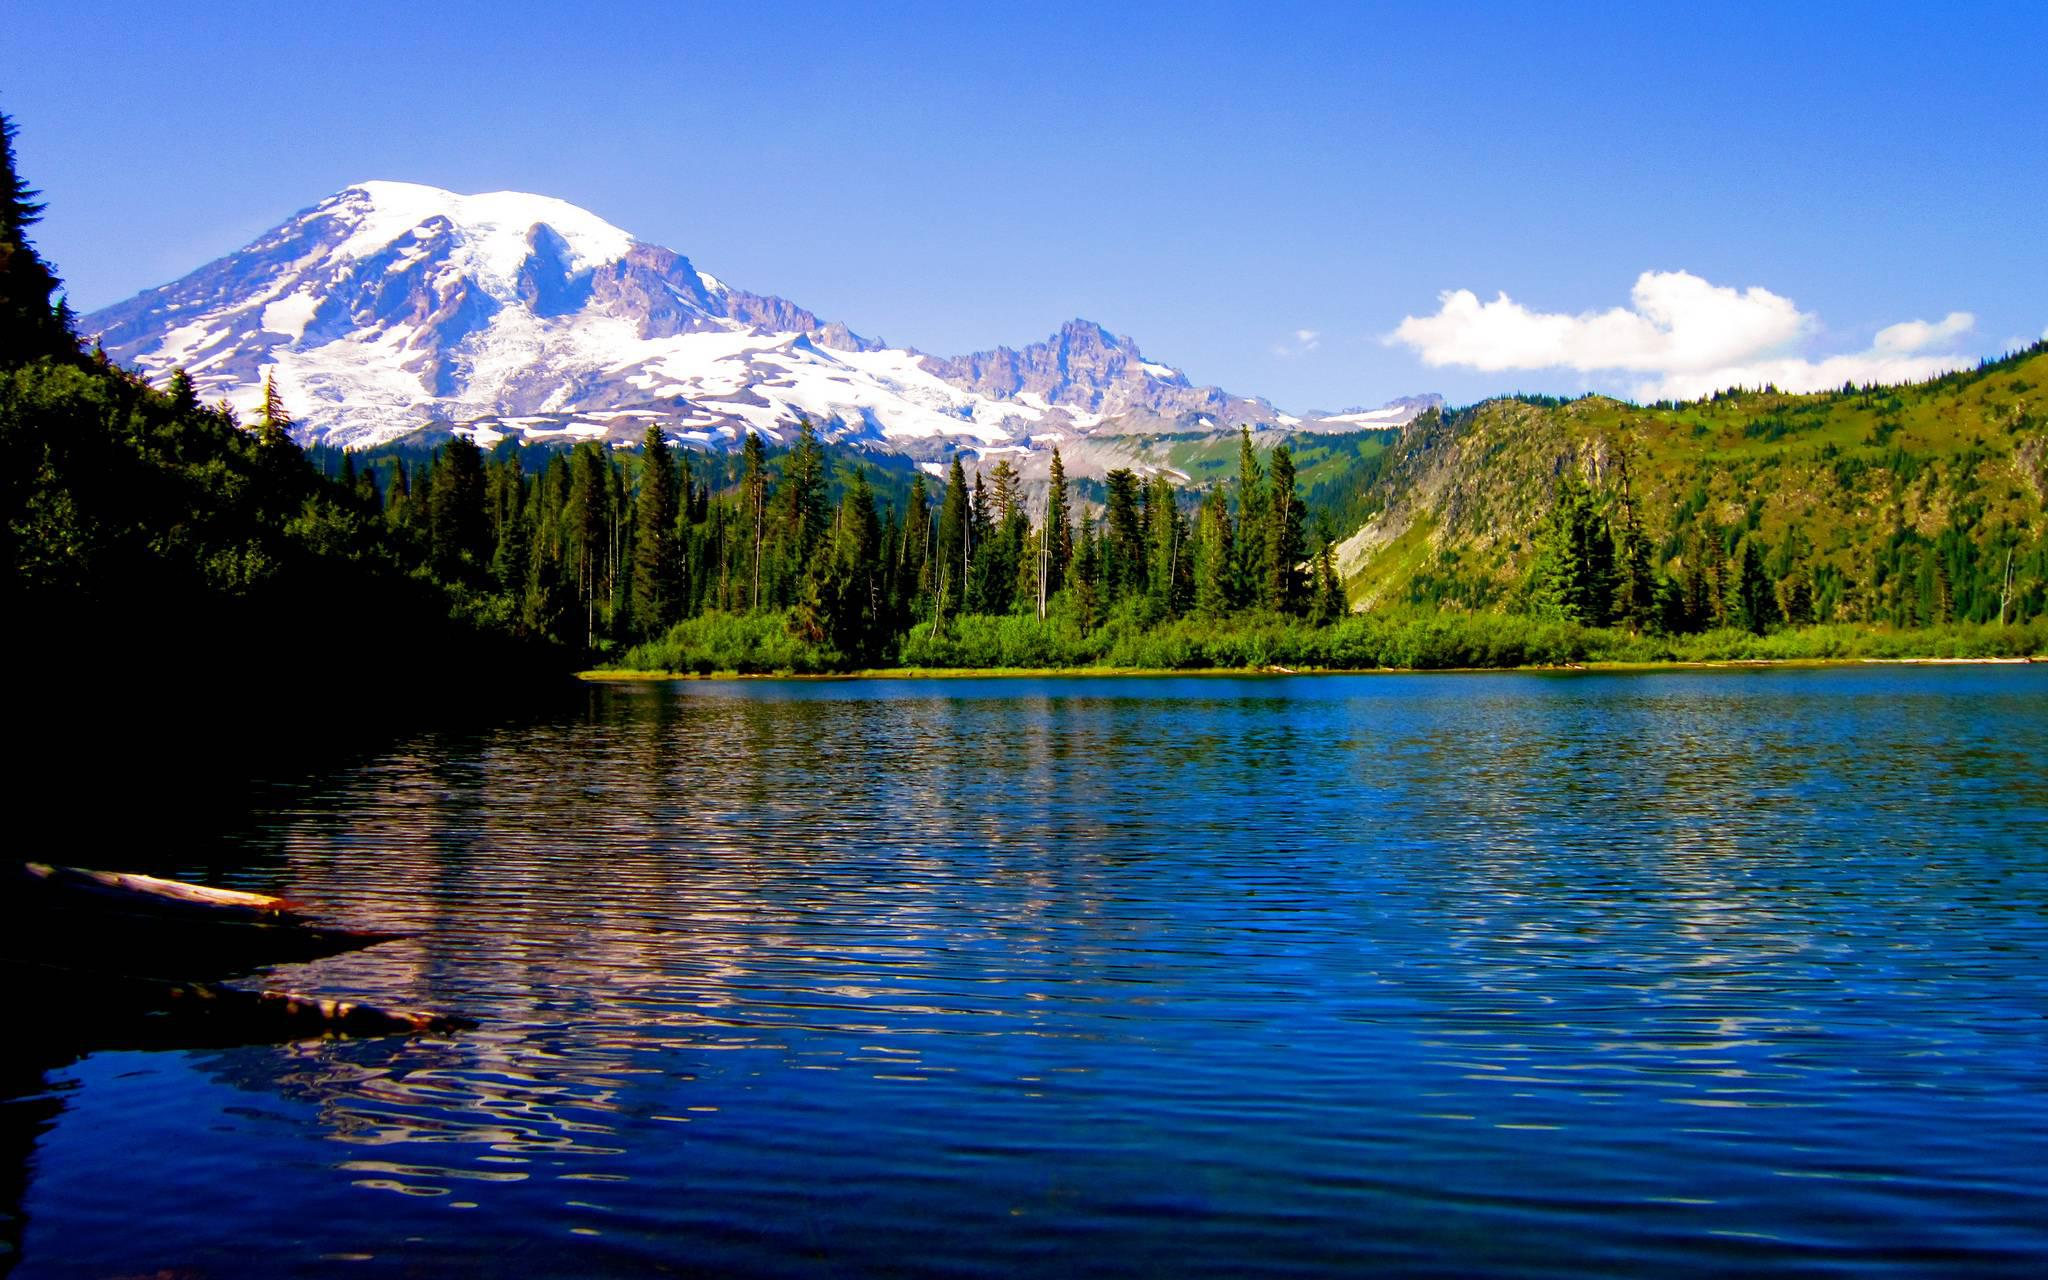 Mt rainier   151594   High Quality and Resolution Wallpapers on 2048x1280